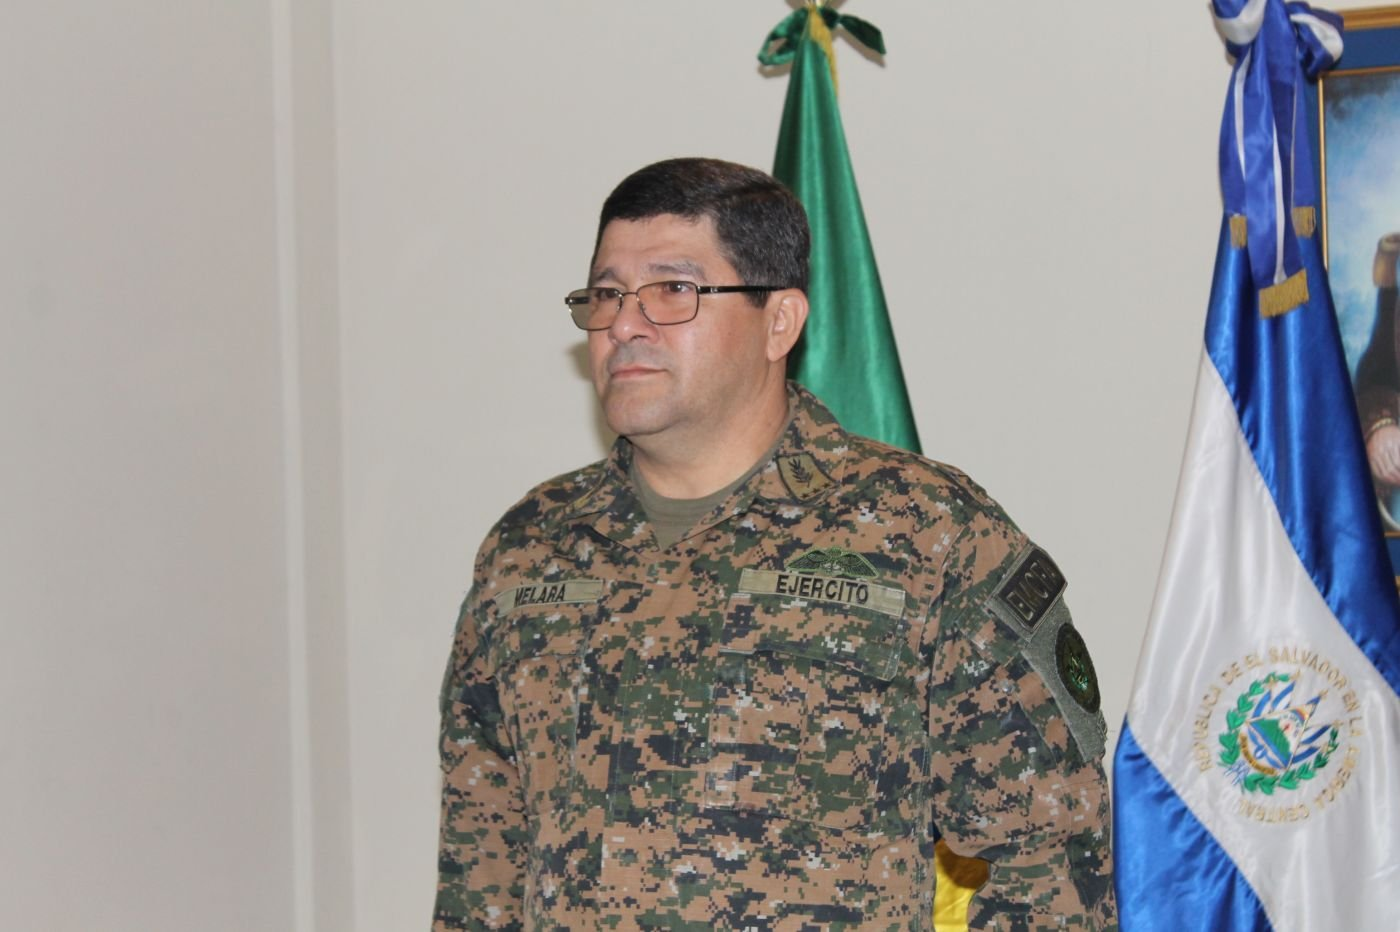 """General Rafael Melara, Chief of the Joint Staff of the Armed Forces of El Salvador: """"Transnational organized crime affects all of us equally"""""""